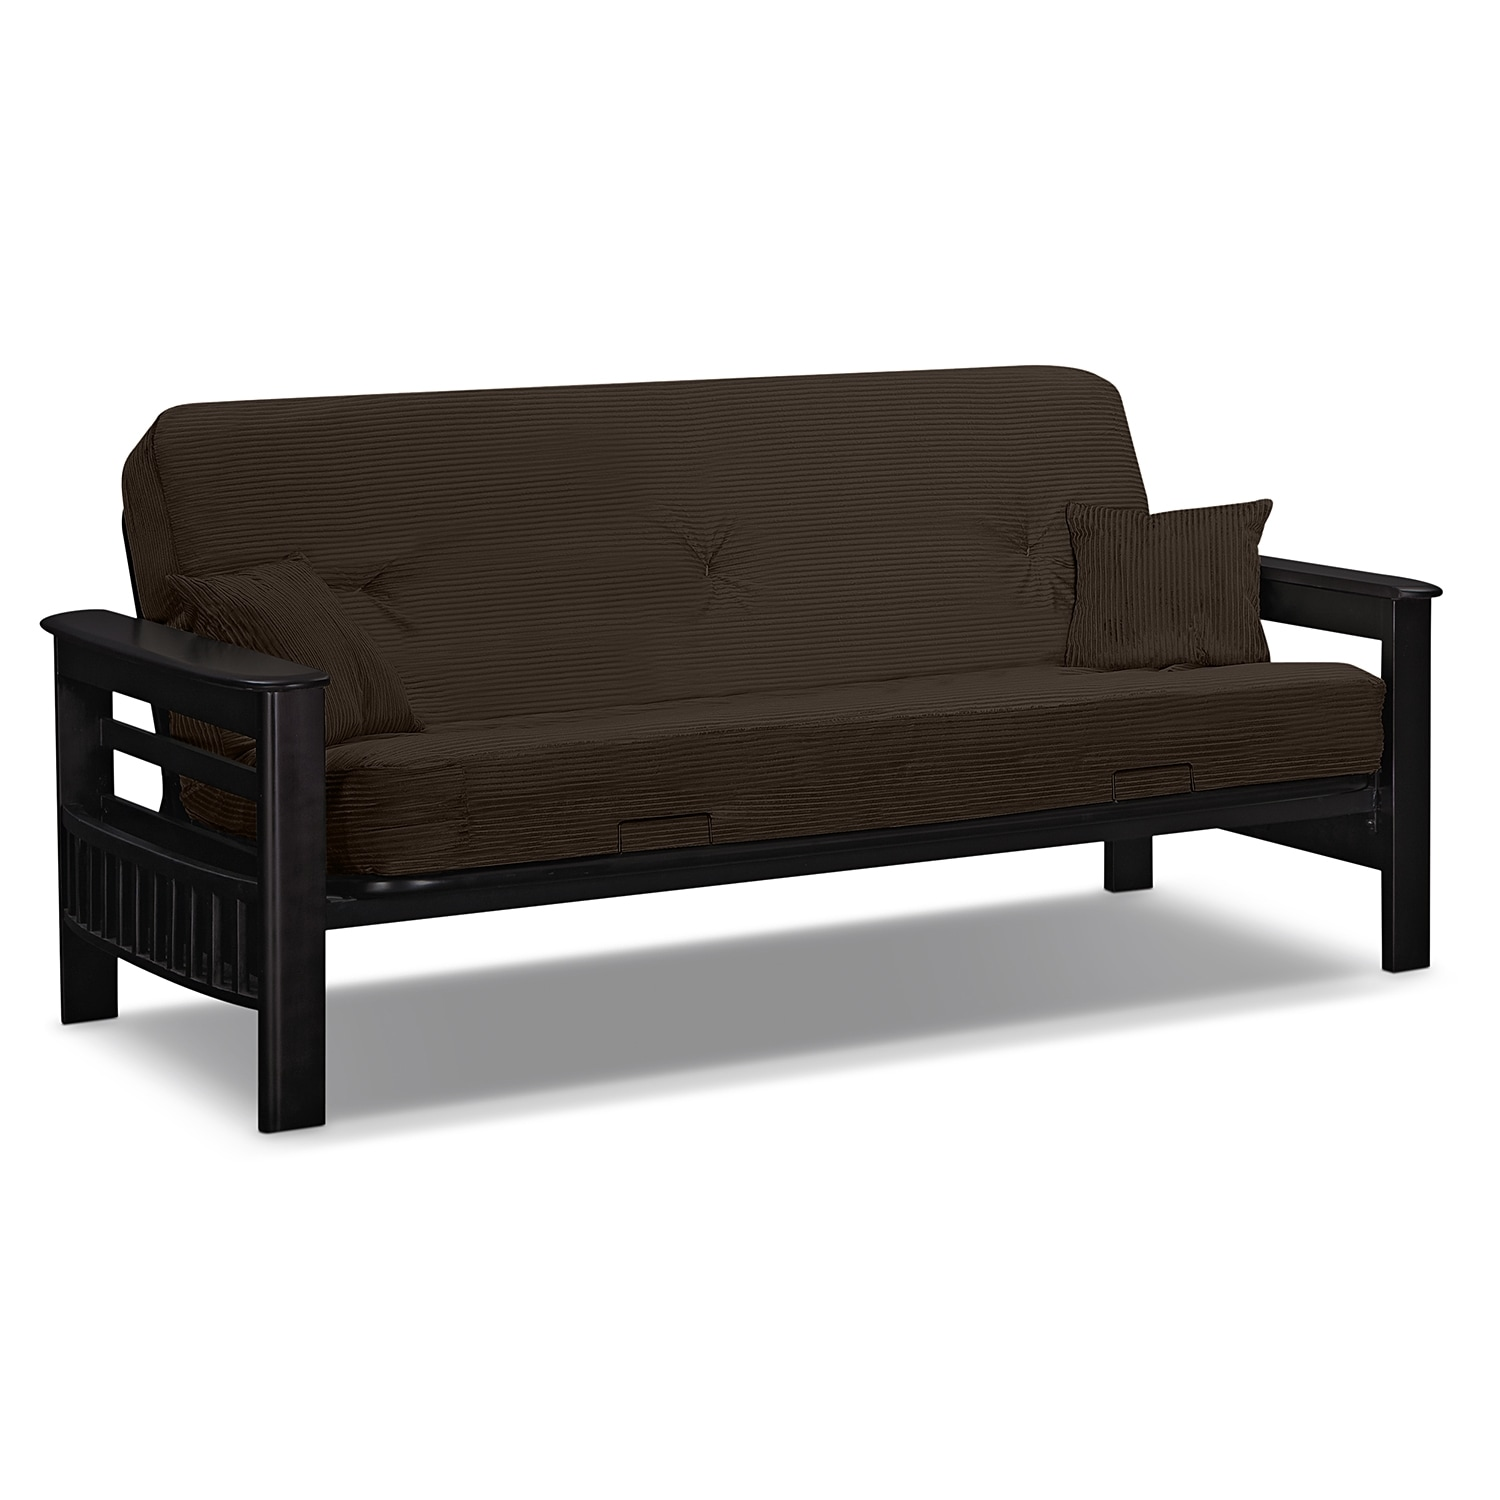 Living Room Furniture - Tampa Futon Sofa Bed - Brown